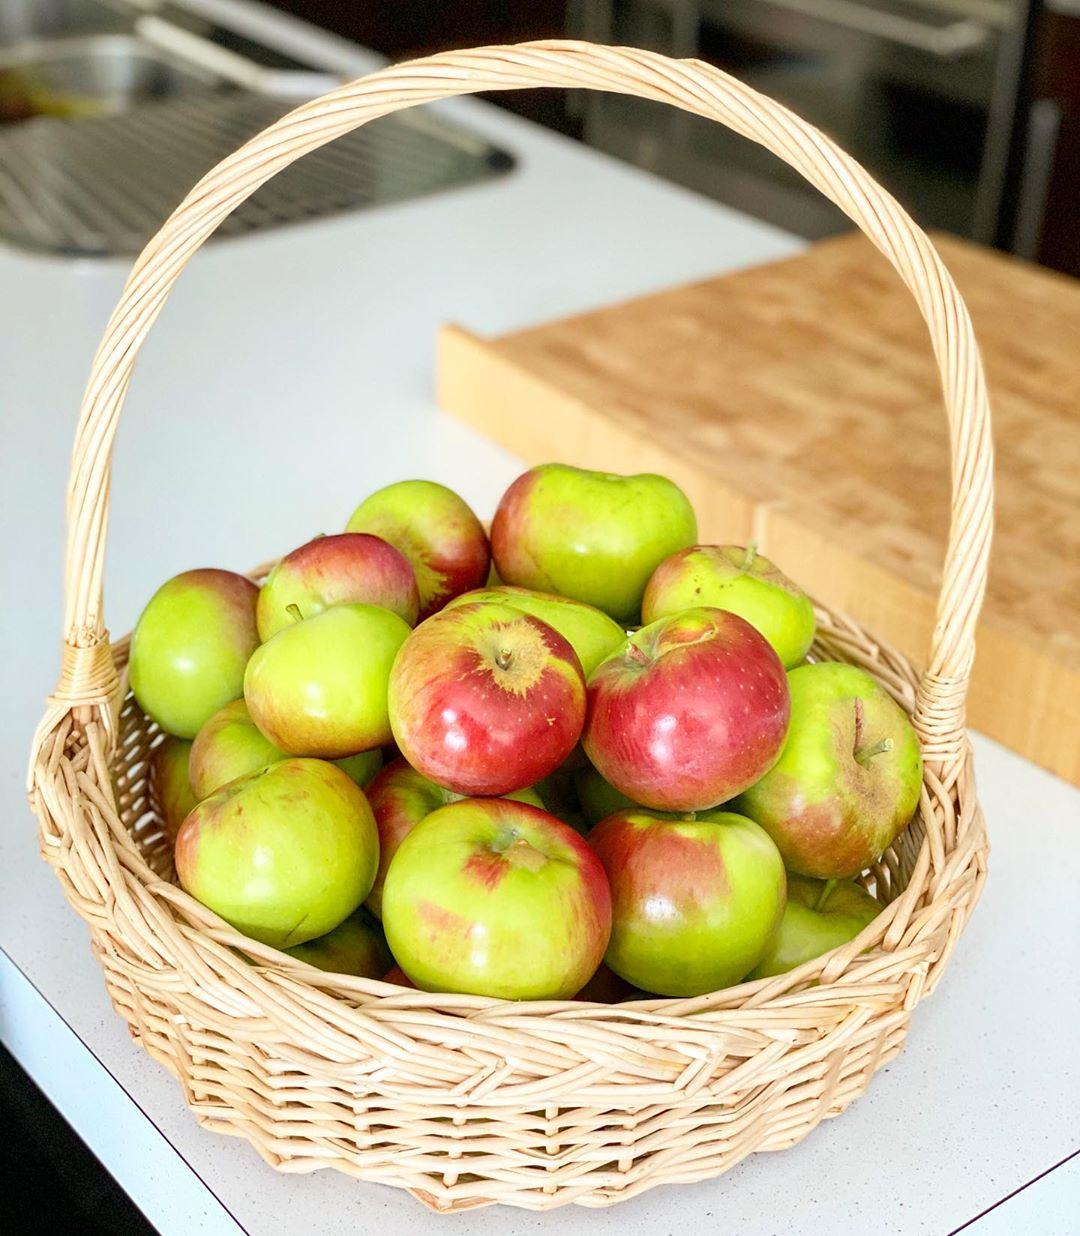 A wicker basket full of Peasgood's Nonsuch apples (a combination of green and red skinned apples)